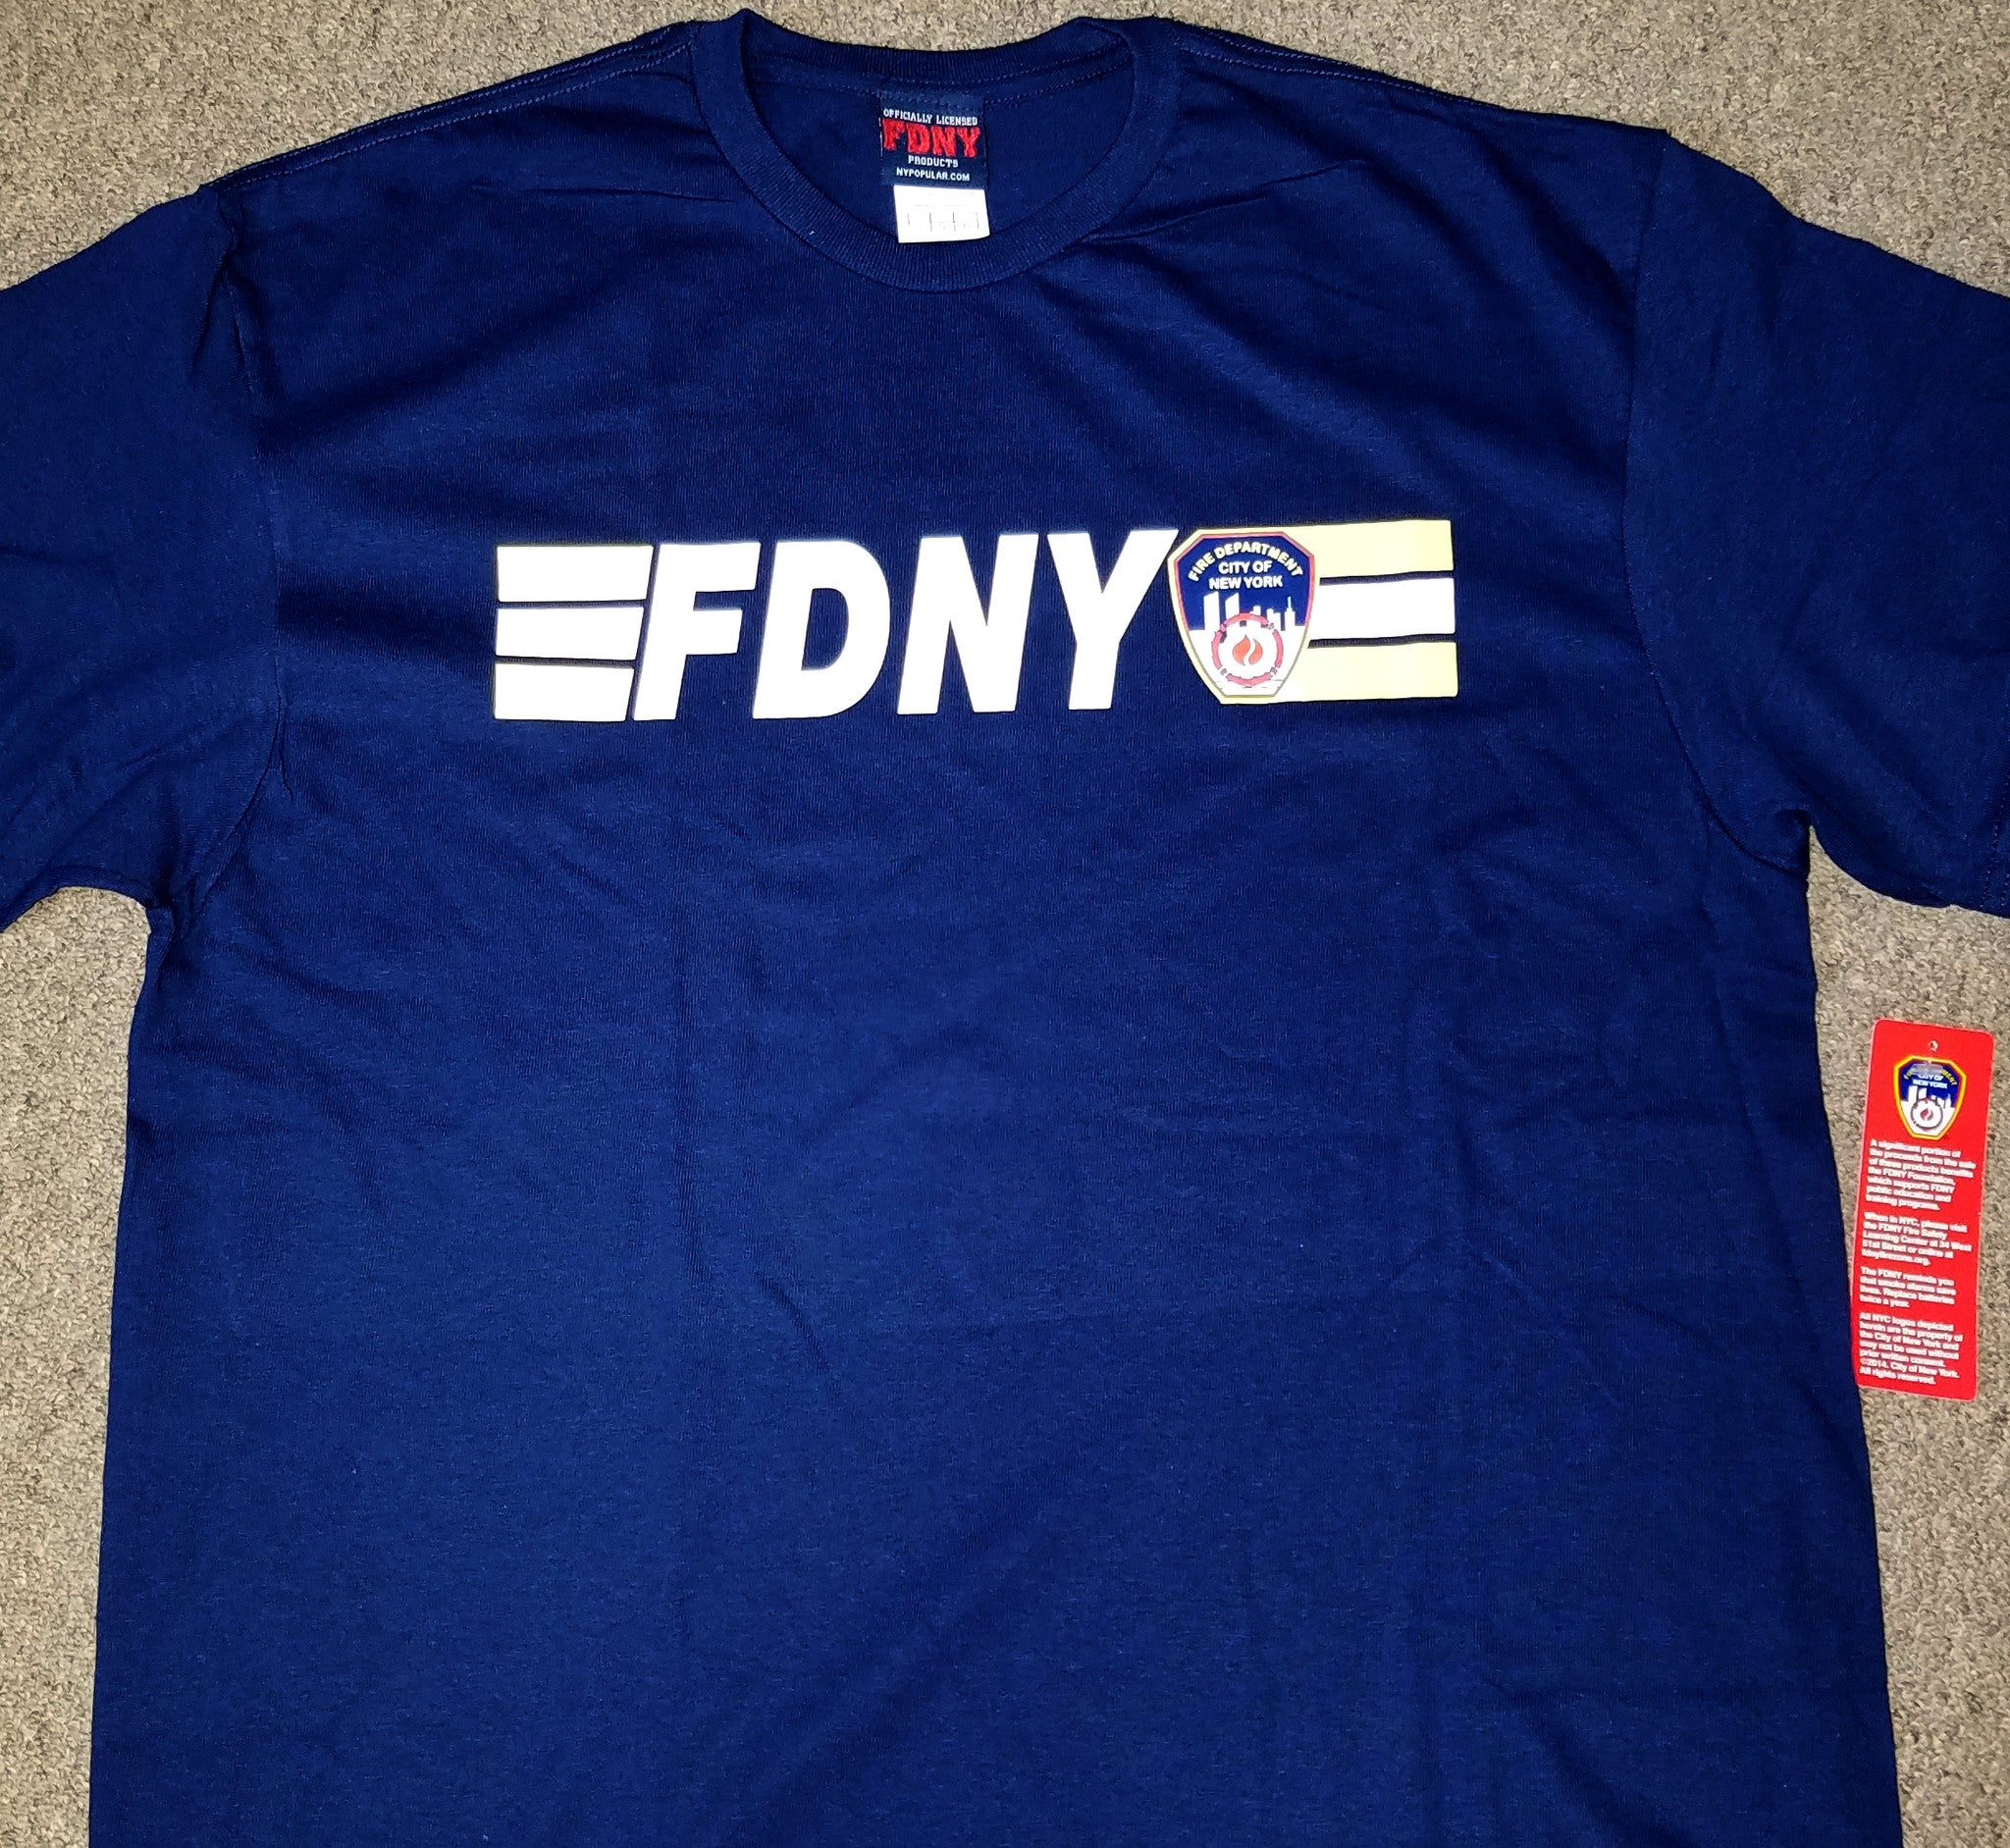 FDNY KEEP BACK 200 FEET SHORT SLEEVE TEE SHIRT